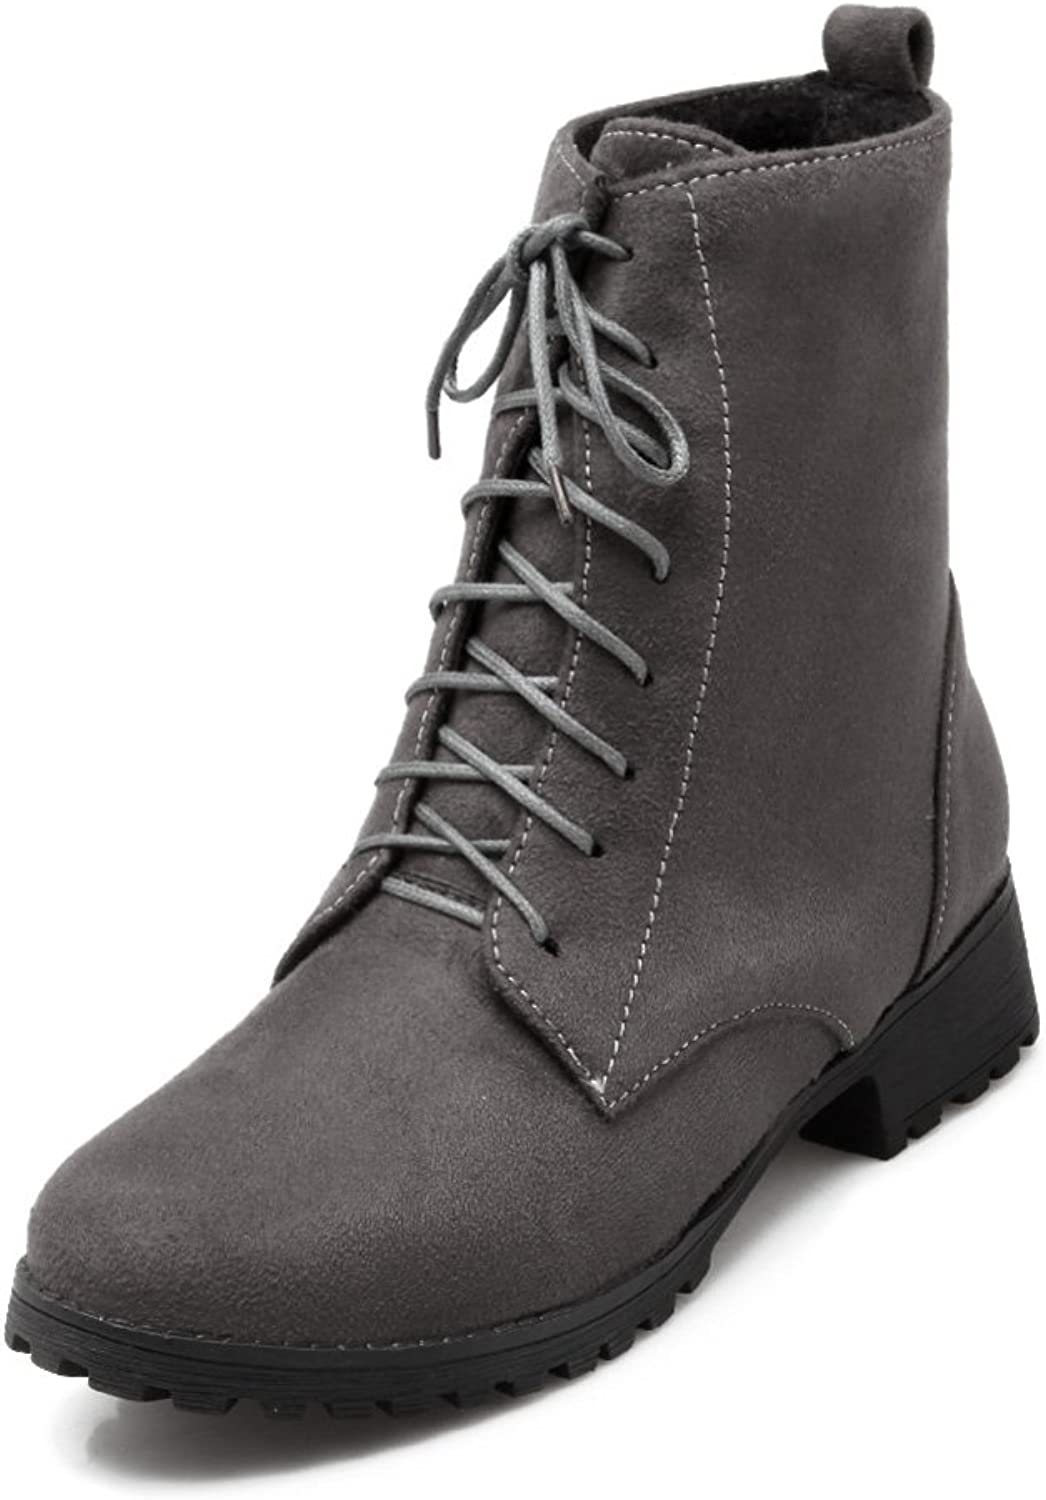 Lucksender Womens Fashion Round Toe Low Heel Lace Up Martin Boots